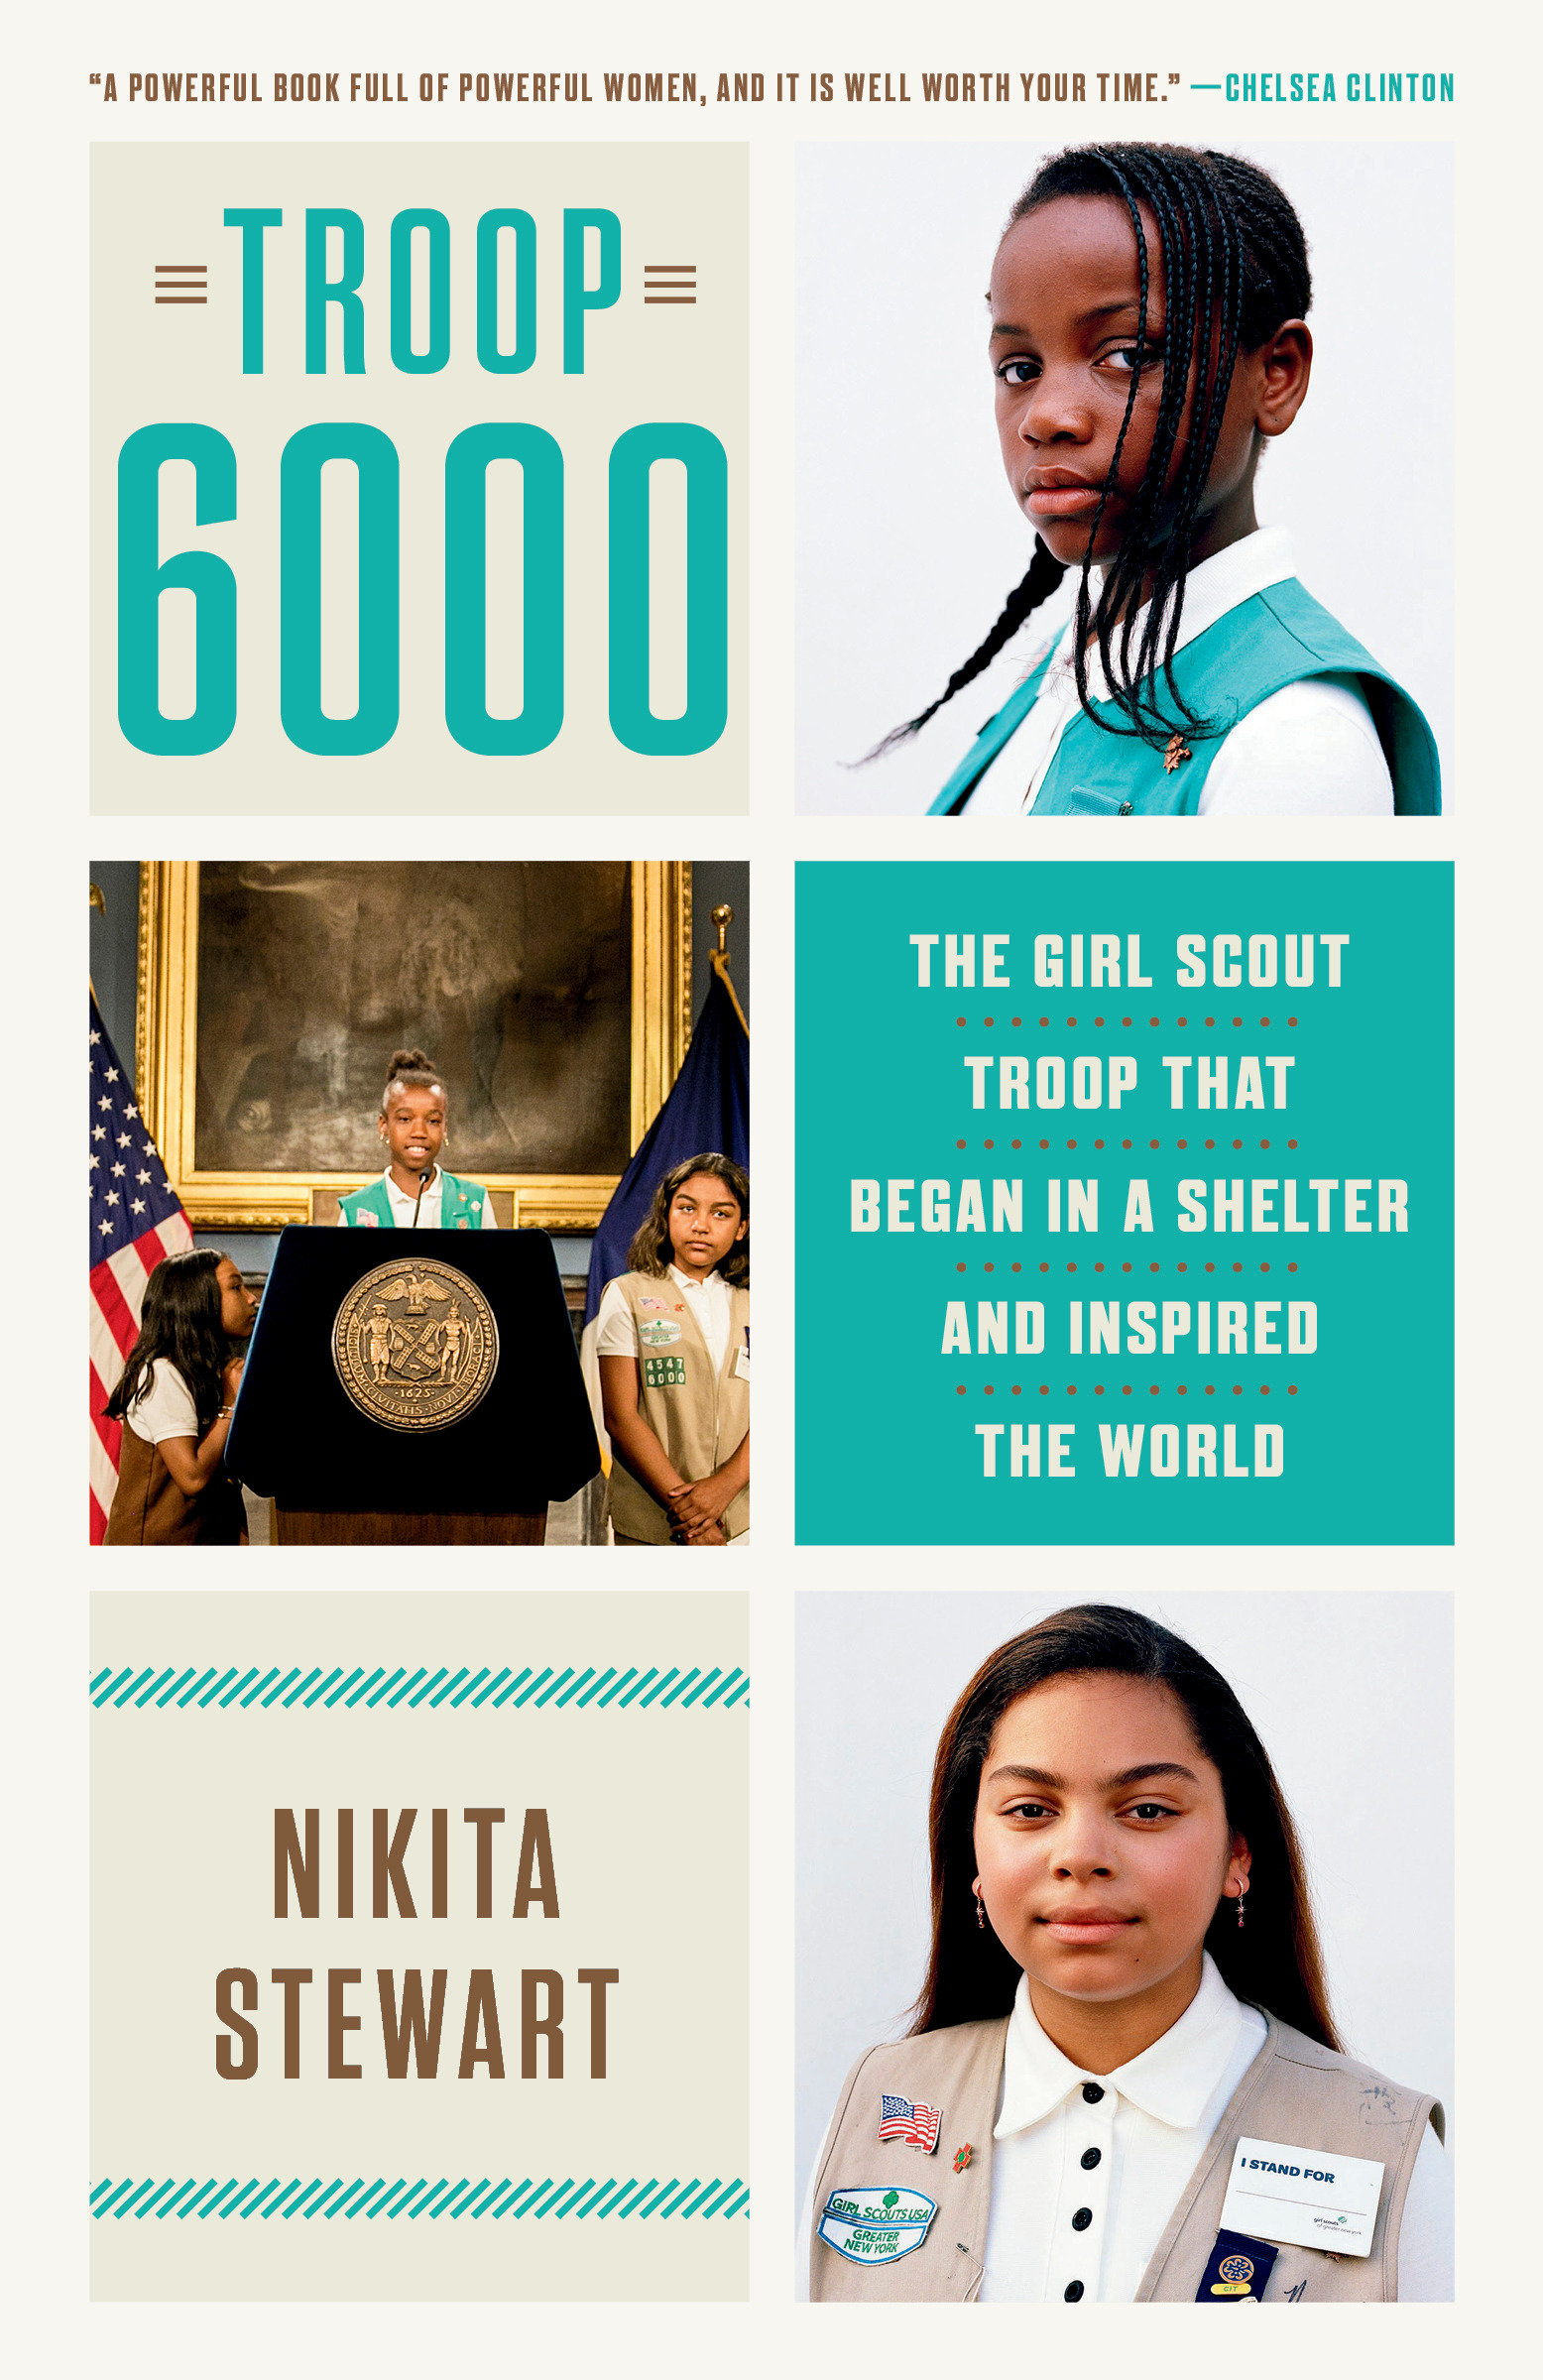 Troop 6000 The Girl Scout Troop That Began in a Shelter and Inspired the World